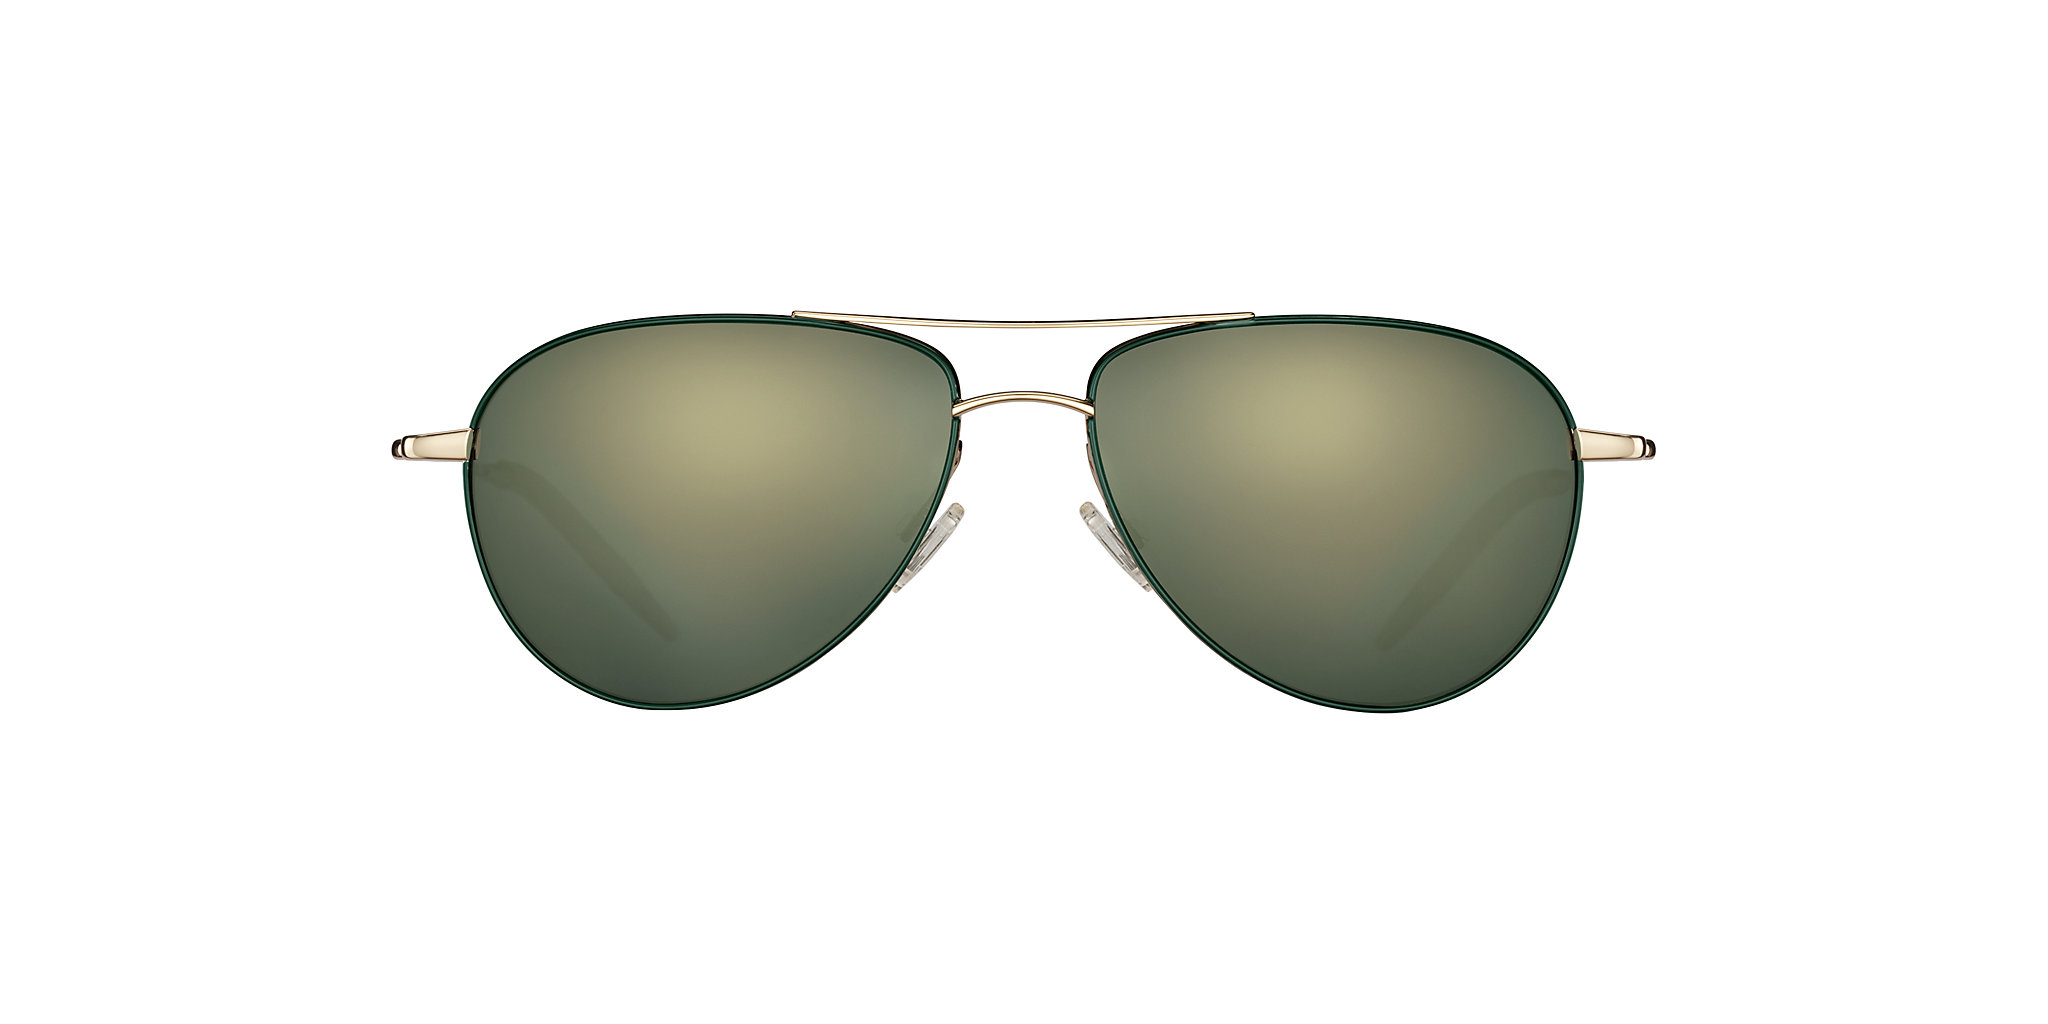 Oliver Peoples Benedict frontal view